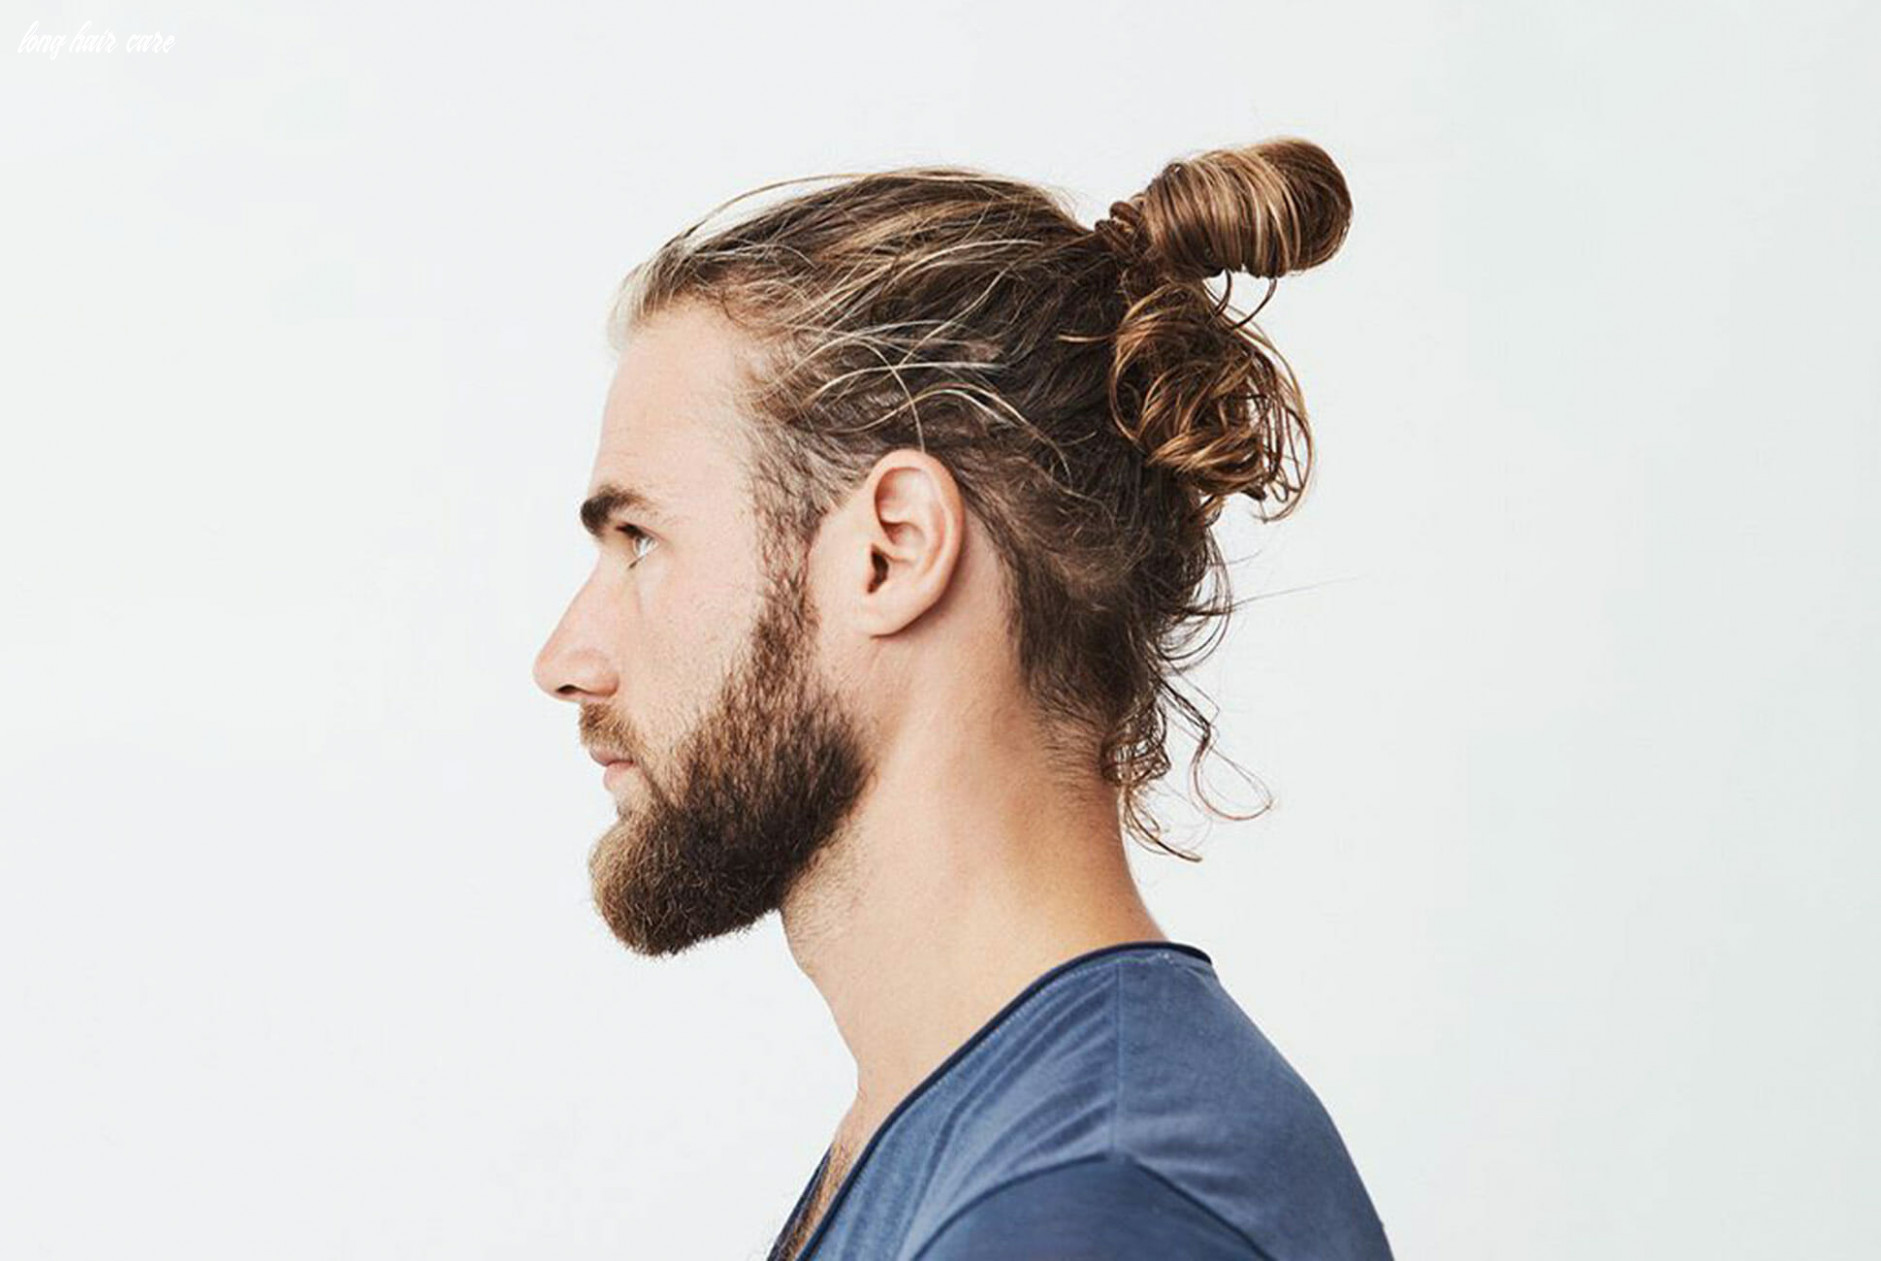 Growing out Your Hair? Here's How to Maintain It • Gear Patrol